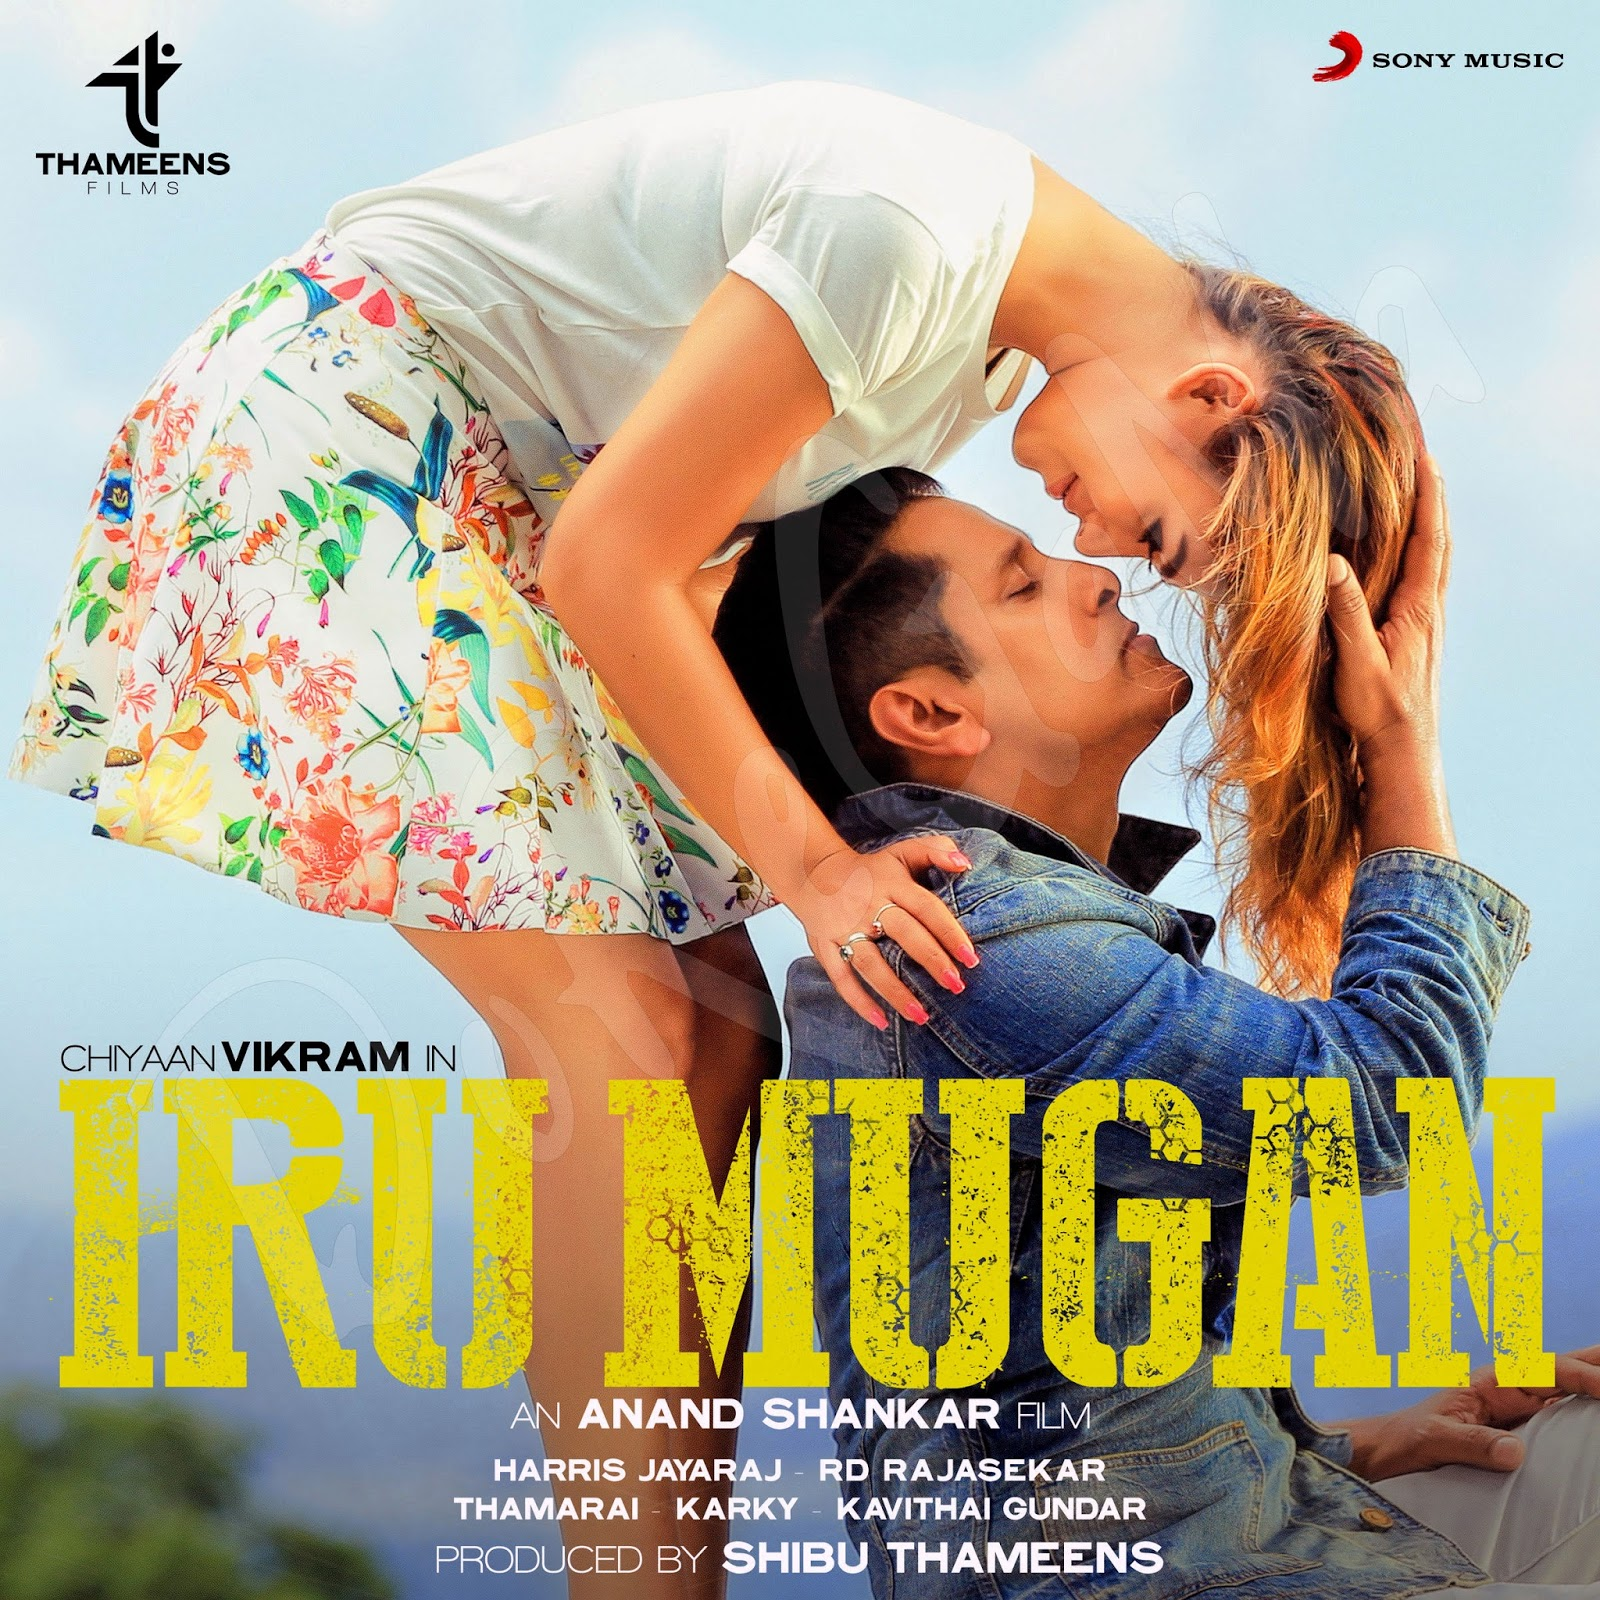 iru mugan mp3 songs free download,iru mugan mp3 songs download,iru mugan mp3 songs atozmp3,iru mugan mp3 songs tamiltunes,iru mugan mp3 songs itunes, iru mugan mp3 songs original motion picture, iru mugan mp3 songs online, iru mugan mp3 songs wap, iru mugan jukebox, iru mugan mp3 songs 320kbps 128kbps,